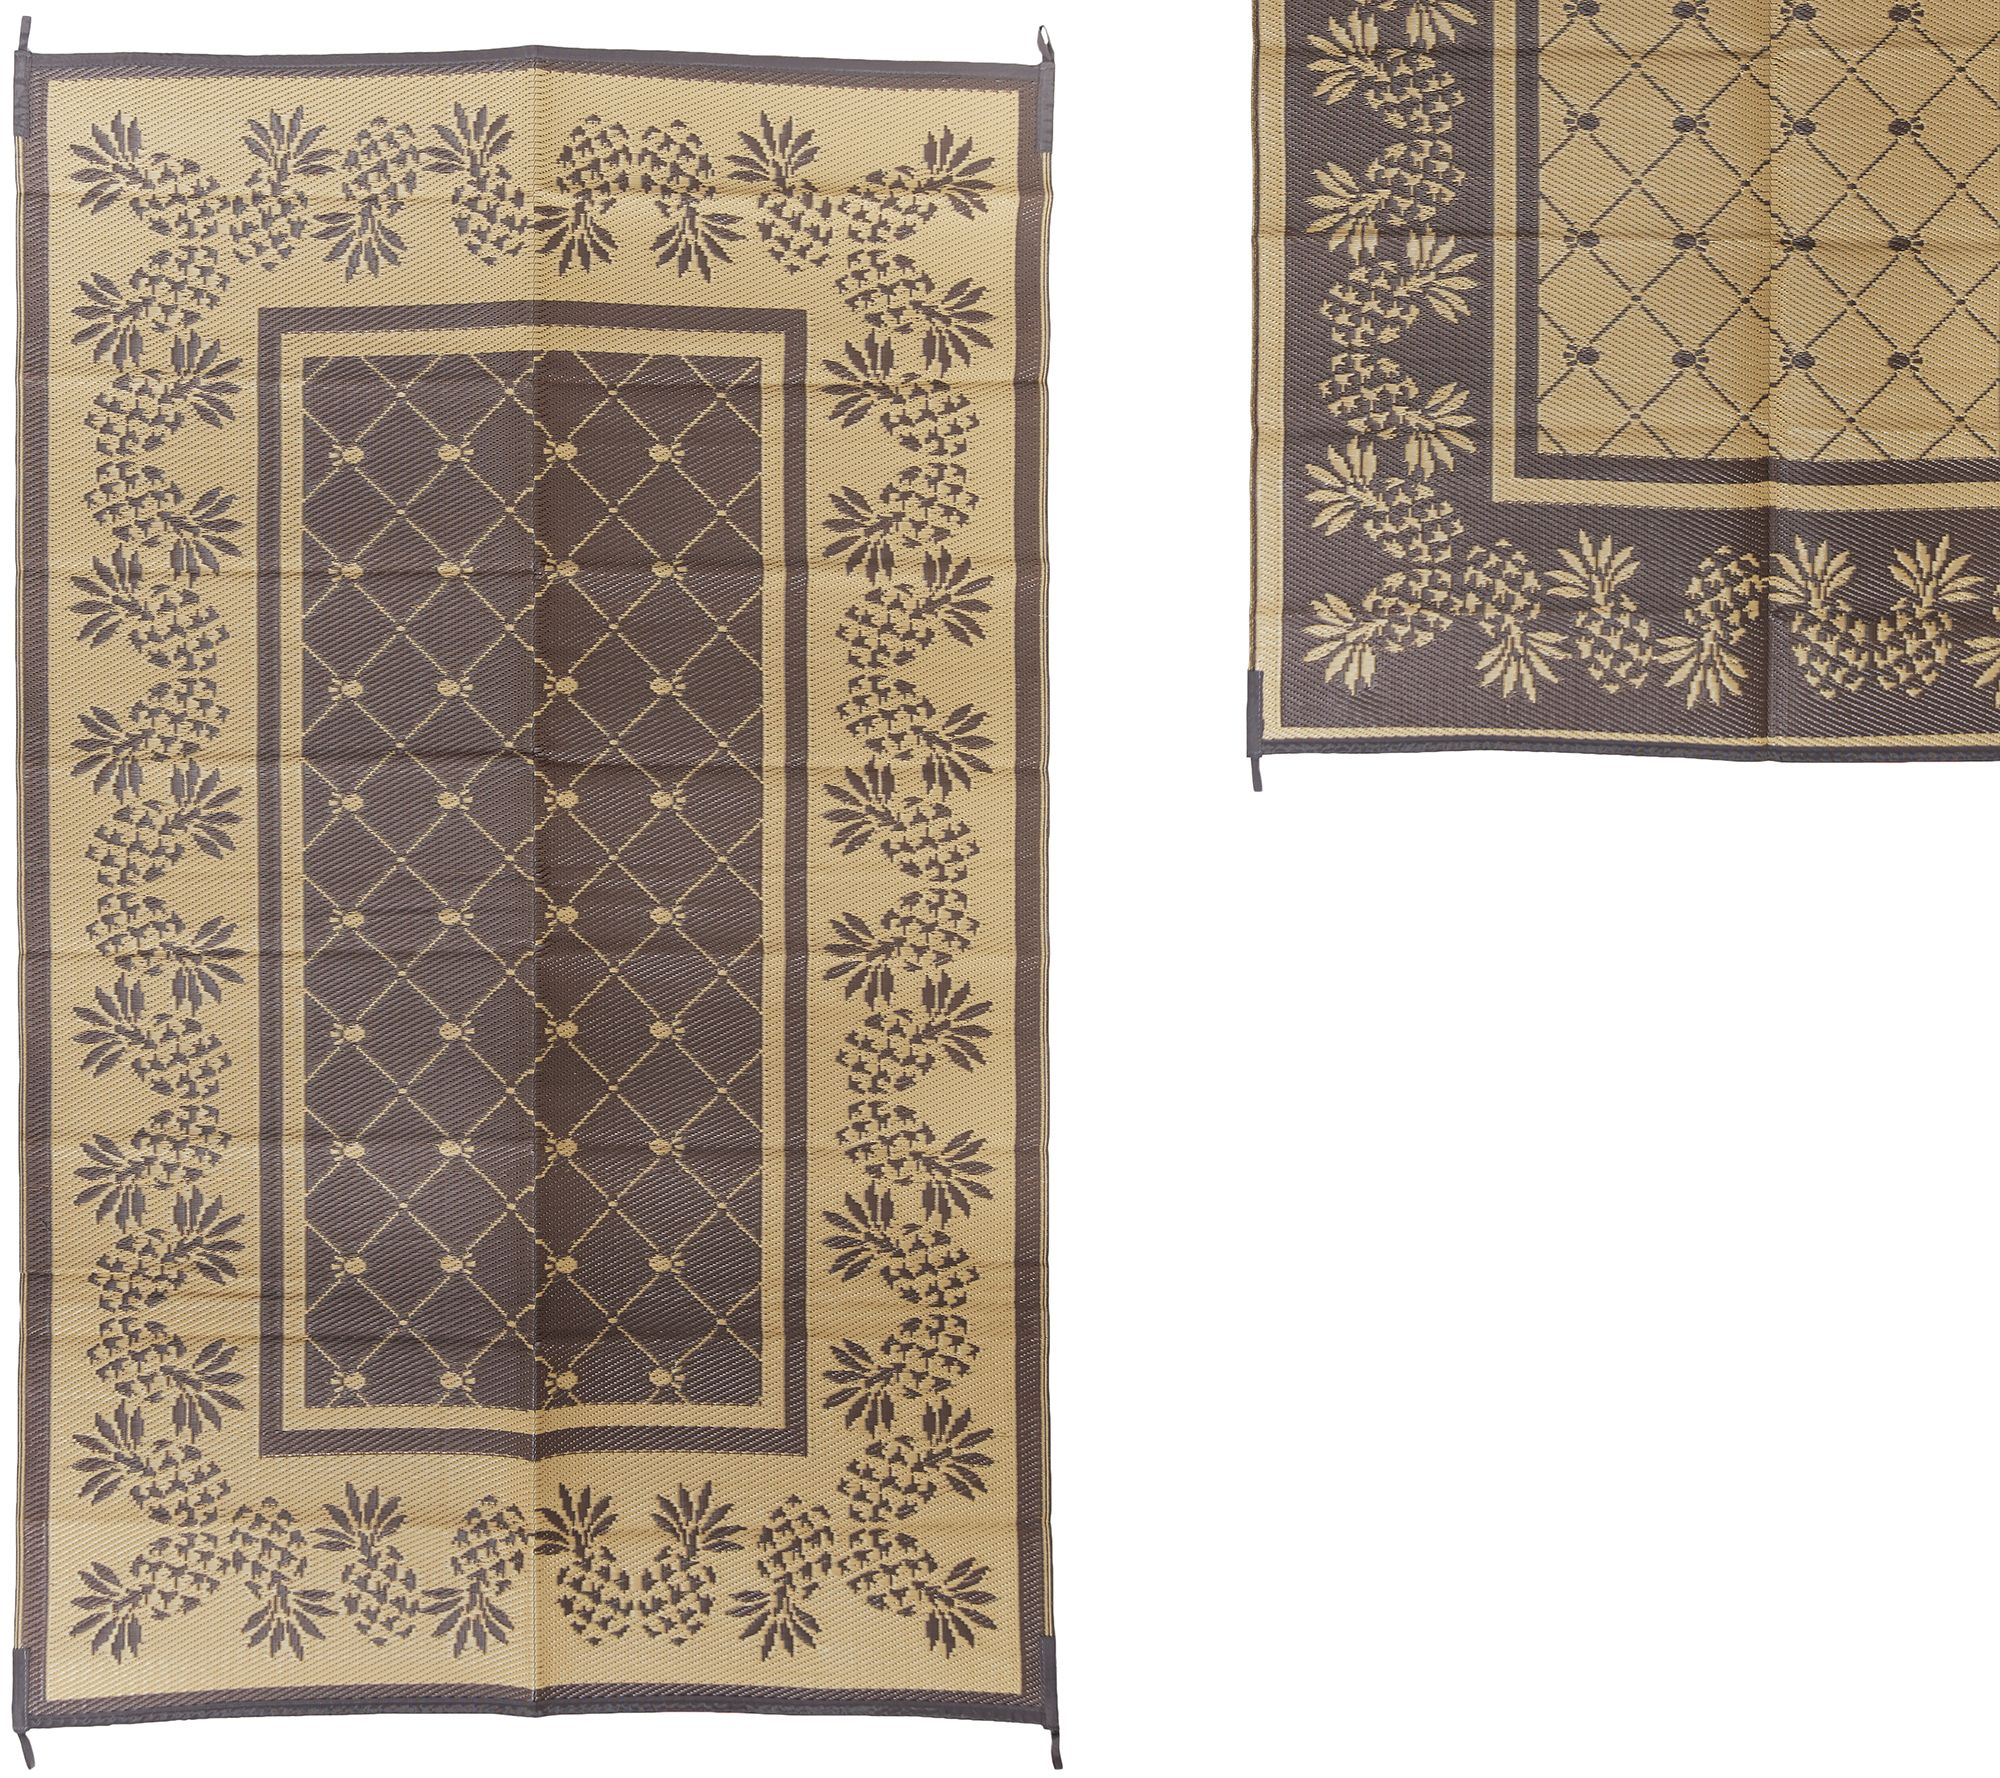 84 Qvc Living Room Rugs Don Asletts 24 X 36 Grime